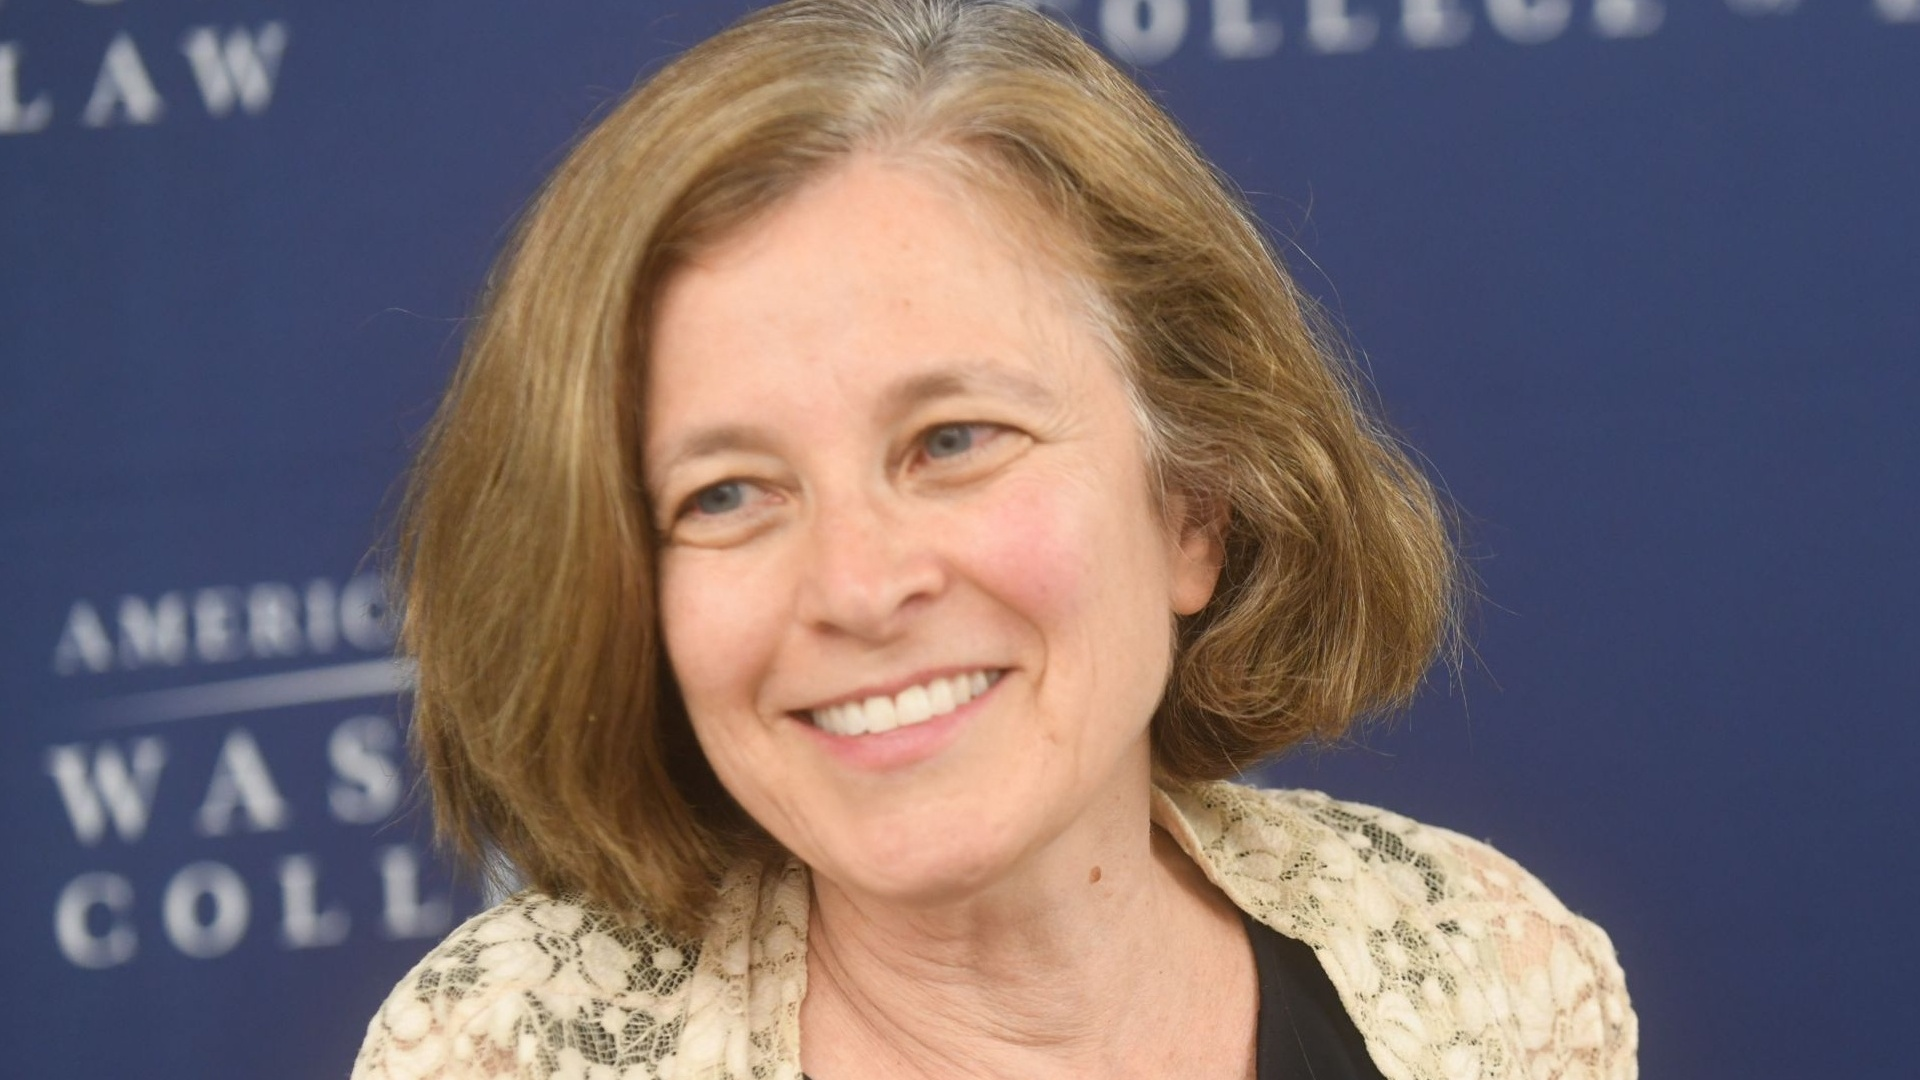 Sarah Bloom Raskin, Former Deputy Secretary of the U.S. Department of Treasury and Former Governor of the Federal Reserve Board, speaks at AUWCL on the U.S. economic and financial regulatory policy in the era of COVID and beyond.